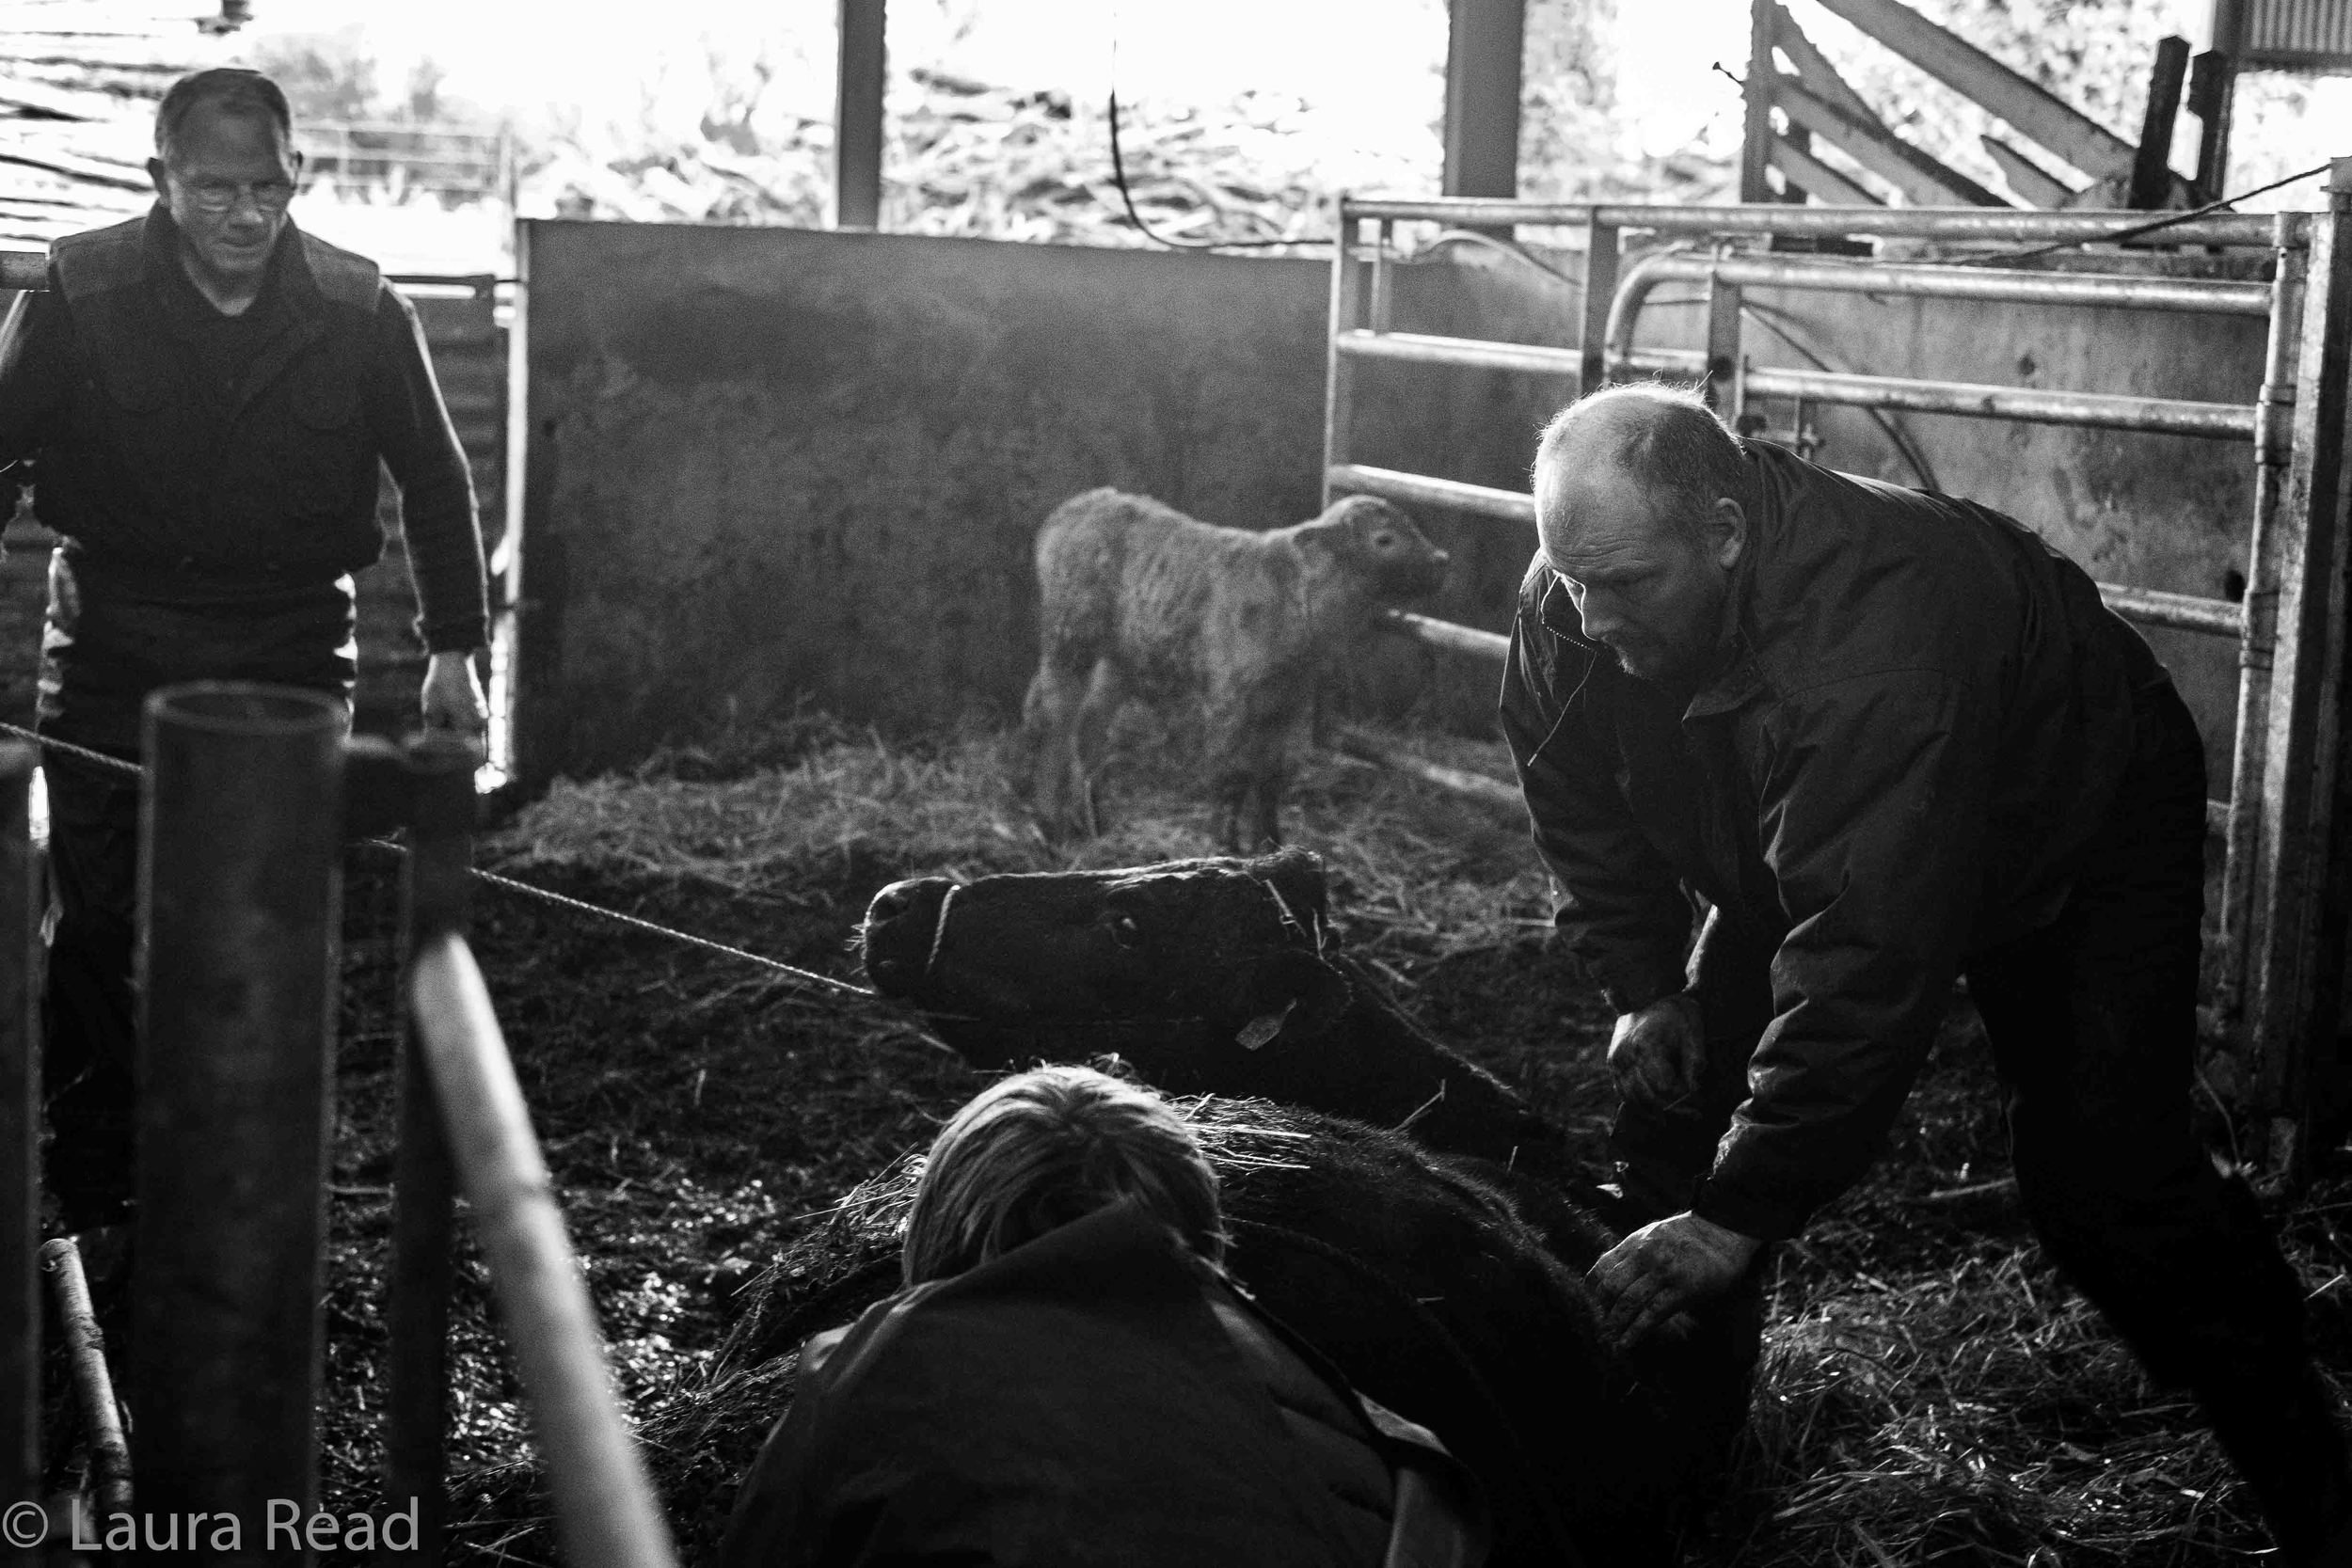 While I was interviewing Oliver Nagle, right, and his father, Pat Nagle, left, about their livestock management practices in the Burren region of County Clare, Ireland, an emergency in the barn put a stop to the conversation. A cow was having problems giving birth. A vet arrived - her name was Geraldine van Leeuwen - and the two men joined her in the birth stall. They allowed me to photographs the scene. These photos record what transpired. WARNING: These are not for the squeamish!